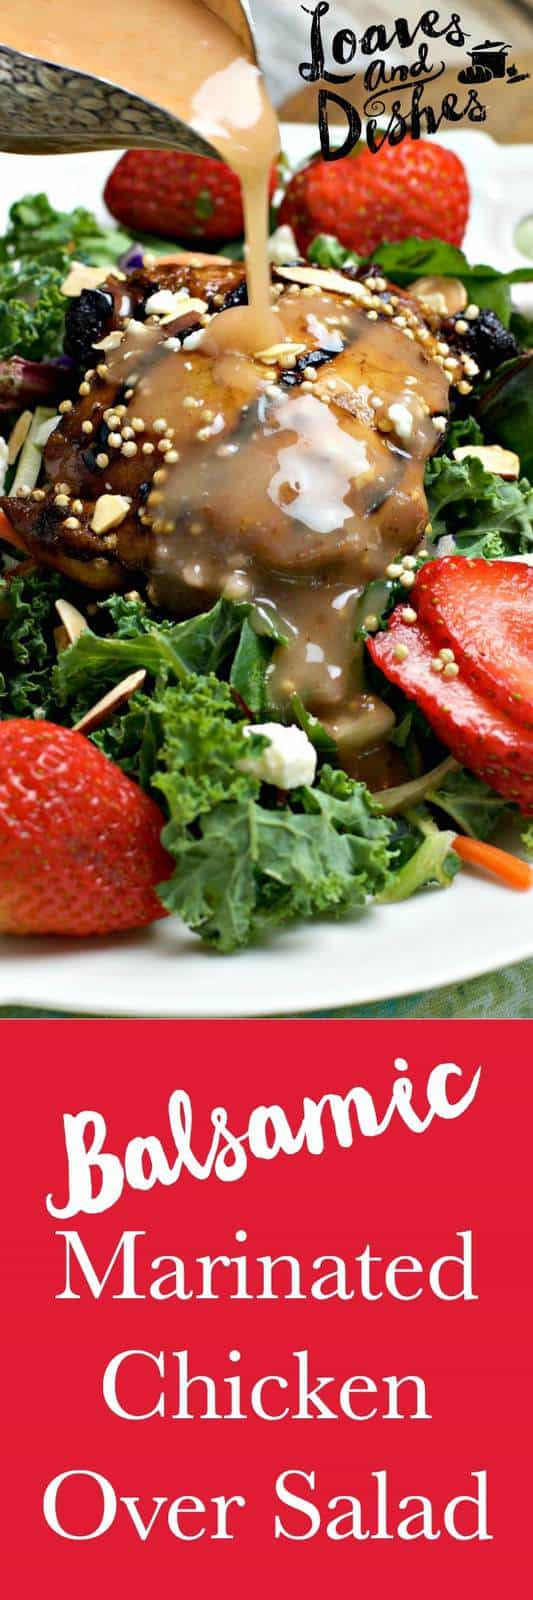 A simple 30 minute meal that is ready in minutes. Elegant, fun, TASTY! Easy way to grill and use chicken with greens. The family will LOVE! #EatSmartVeggies, #IC #ad